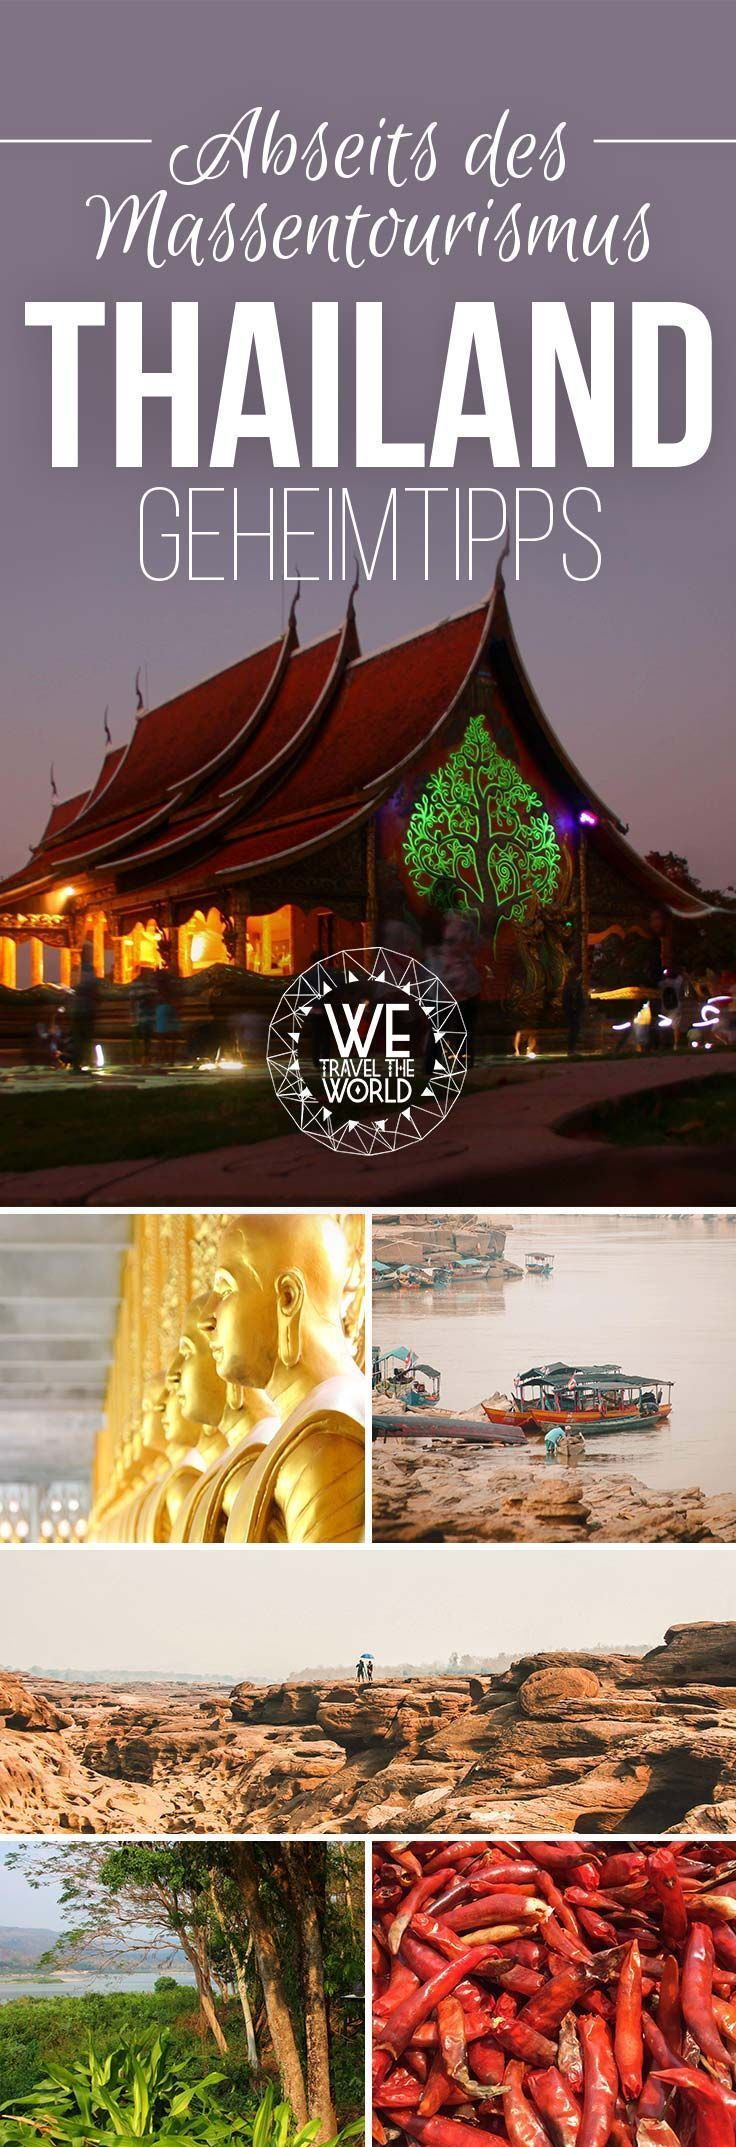 Thailand away from mass tourism 11 corners you have not seen before -